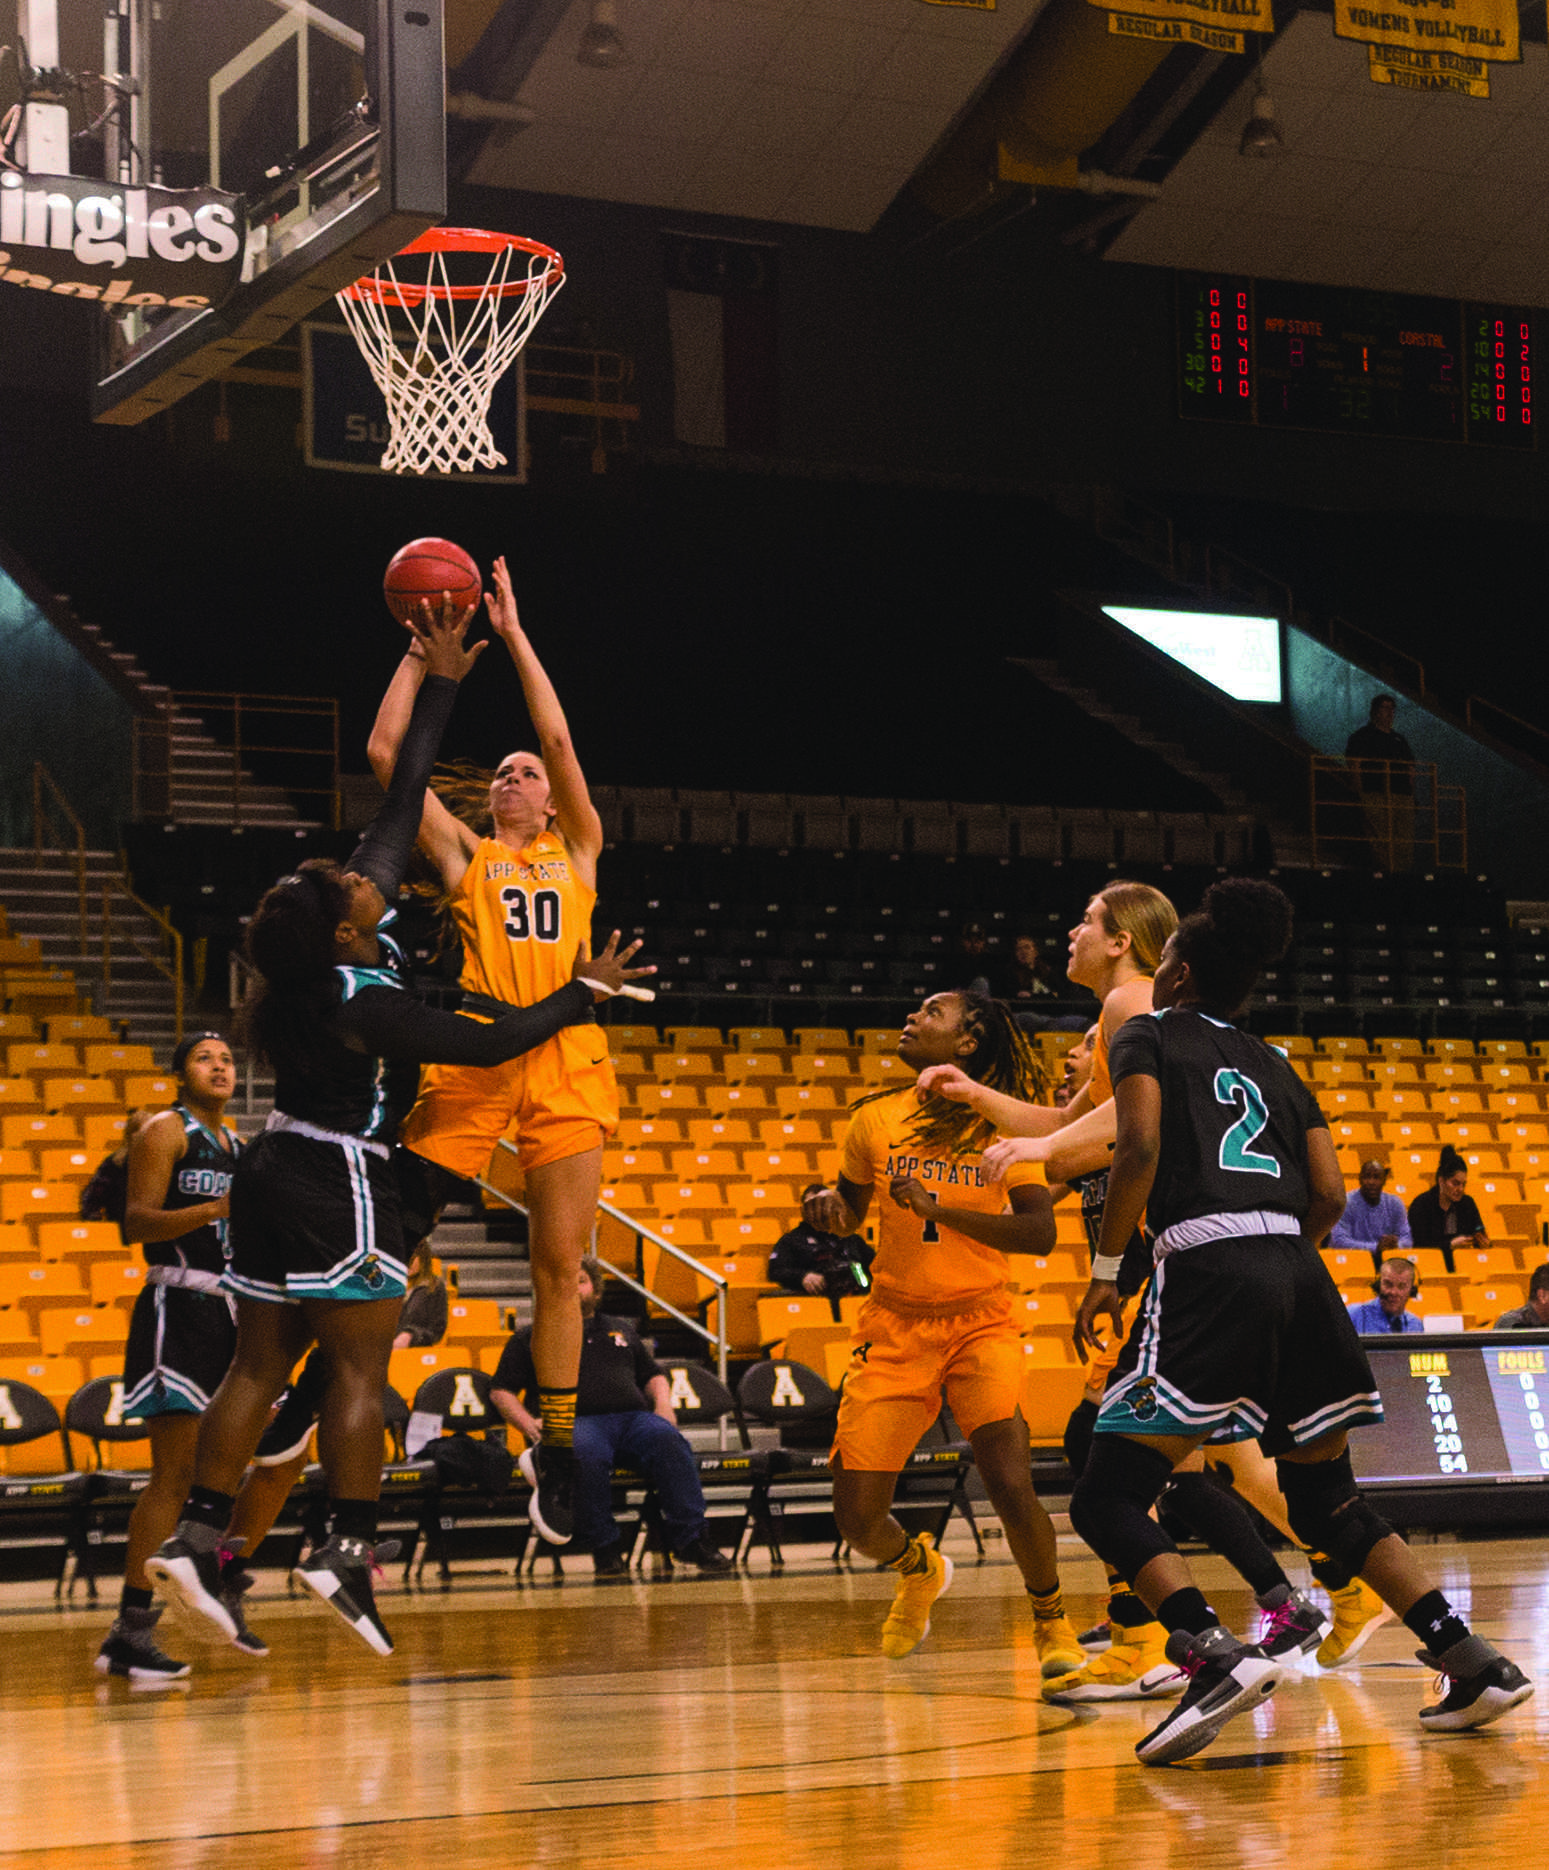 Freshman forward Lainey Cosnell makes a shot to score two points while teammates Bayley Plummer and Maya Calder position themselves to catch the rebound in the game against Coastal Carolina on Saturday, March 3rd.